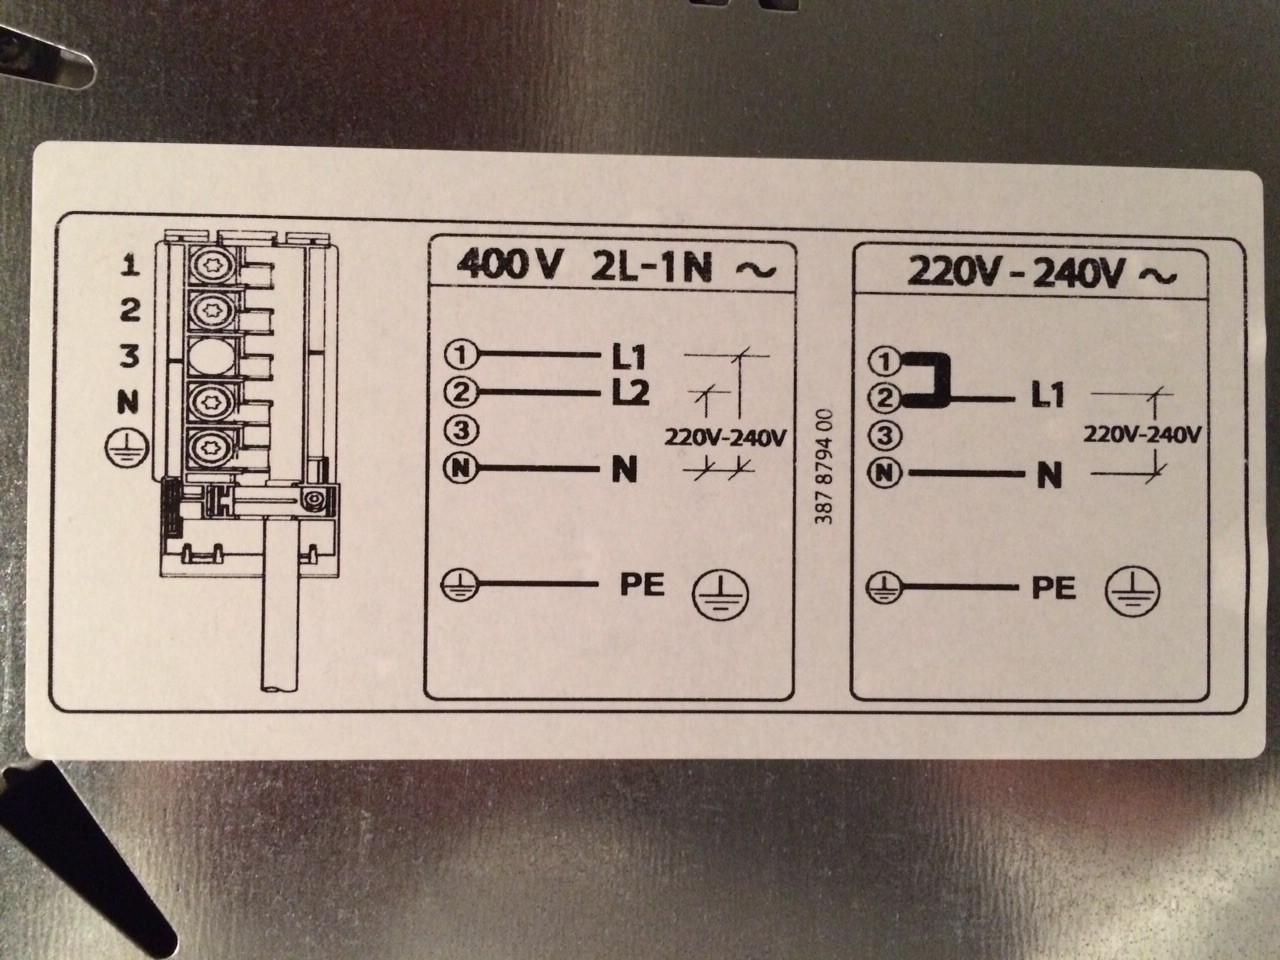 medium resolution of diagram wiring ddc7015 wiring library wiring gfci outlets in series diagram wiring ddc7015